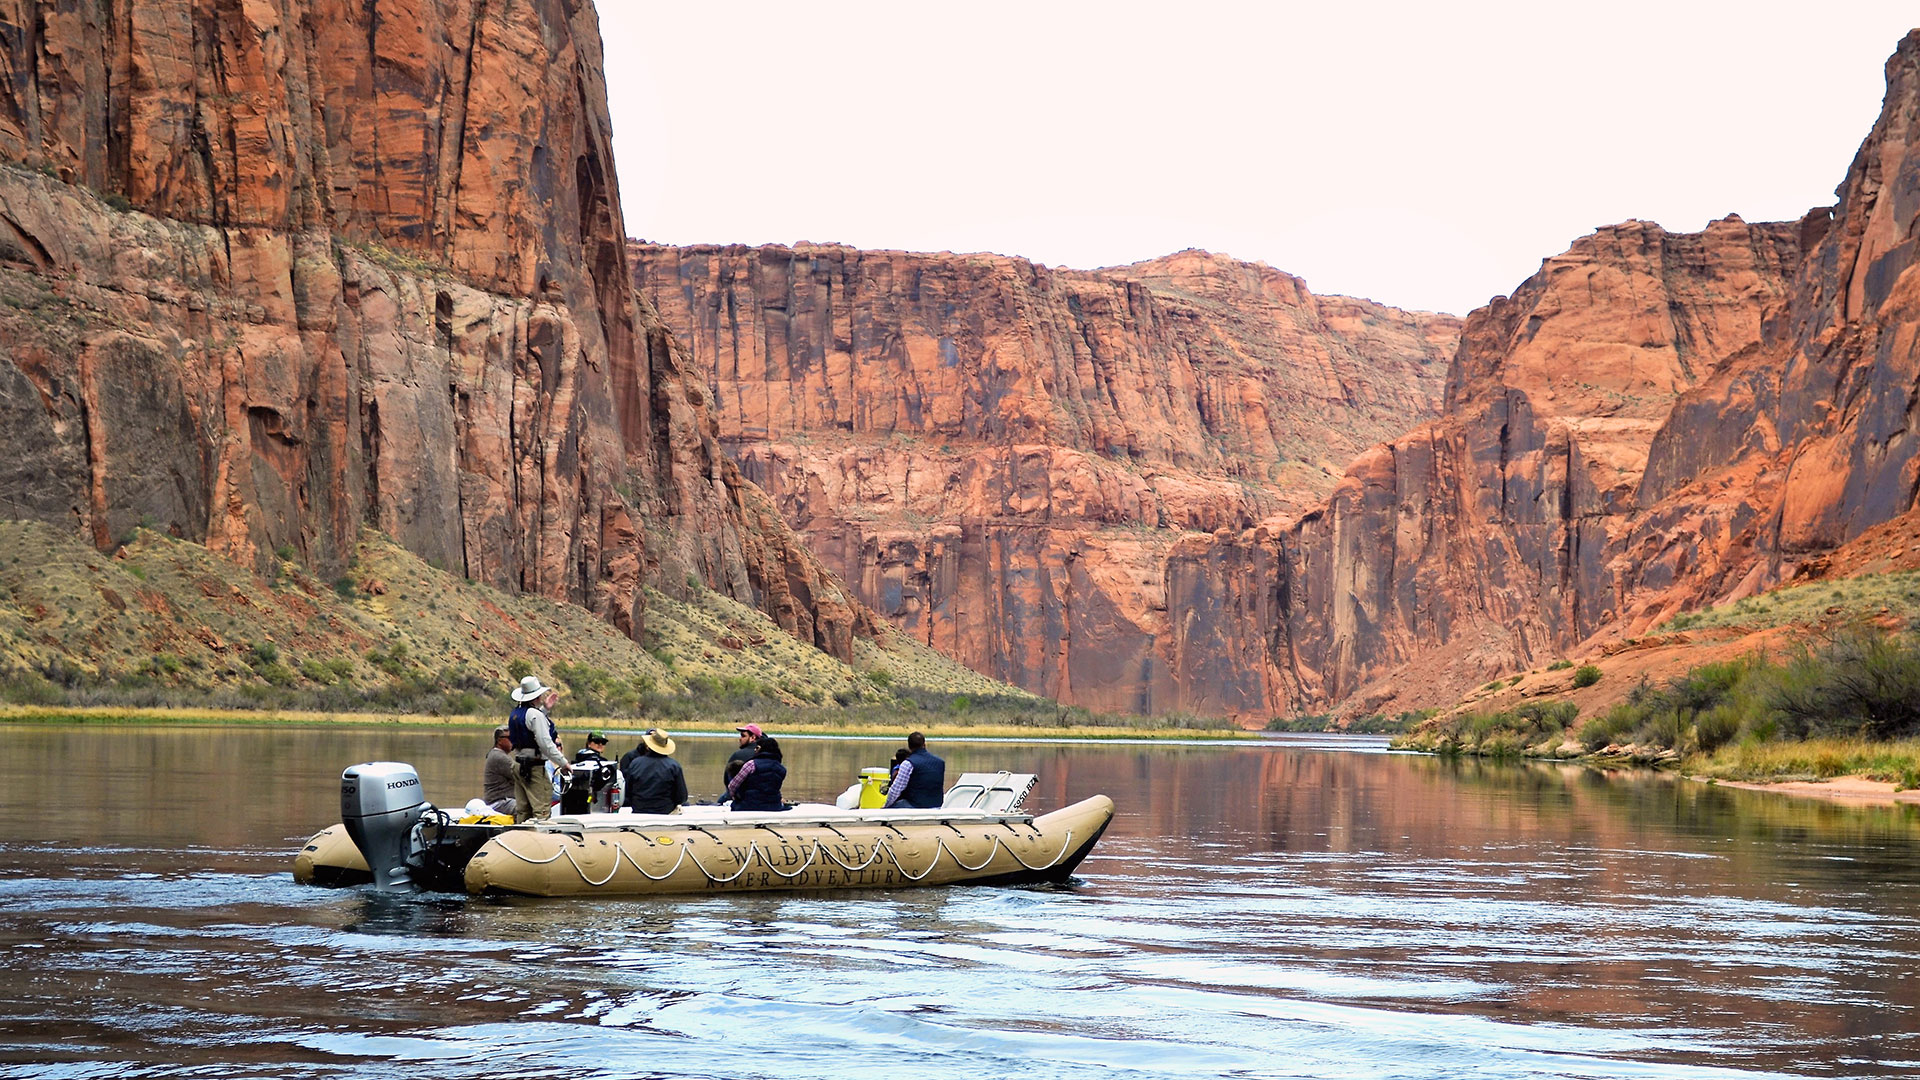 Passengers on a river raft floating in the Colorado River